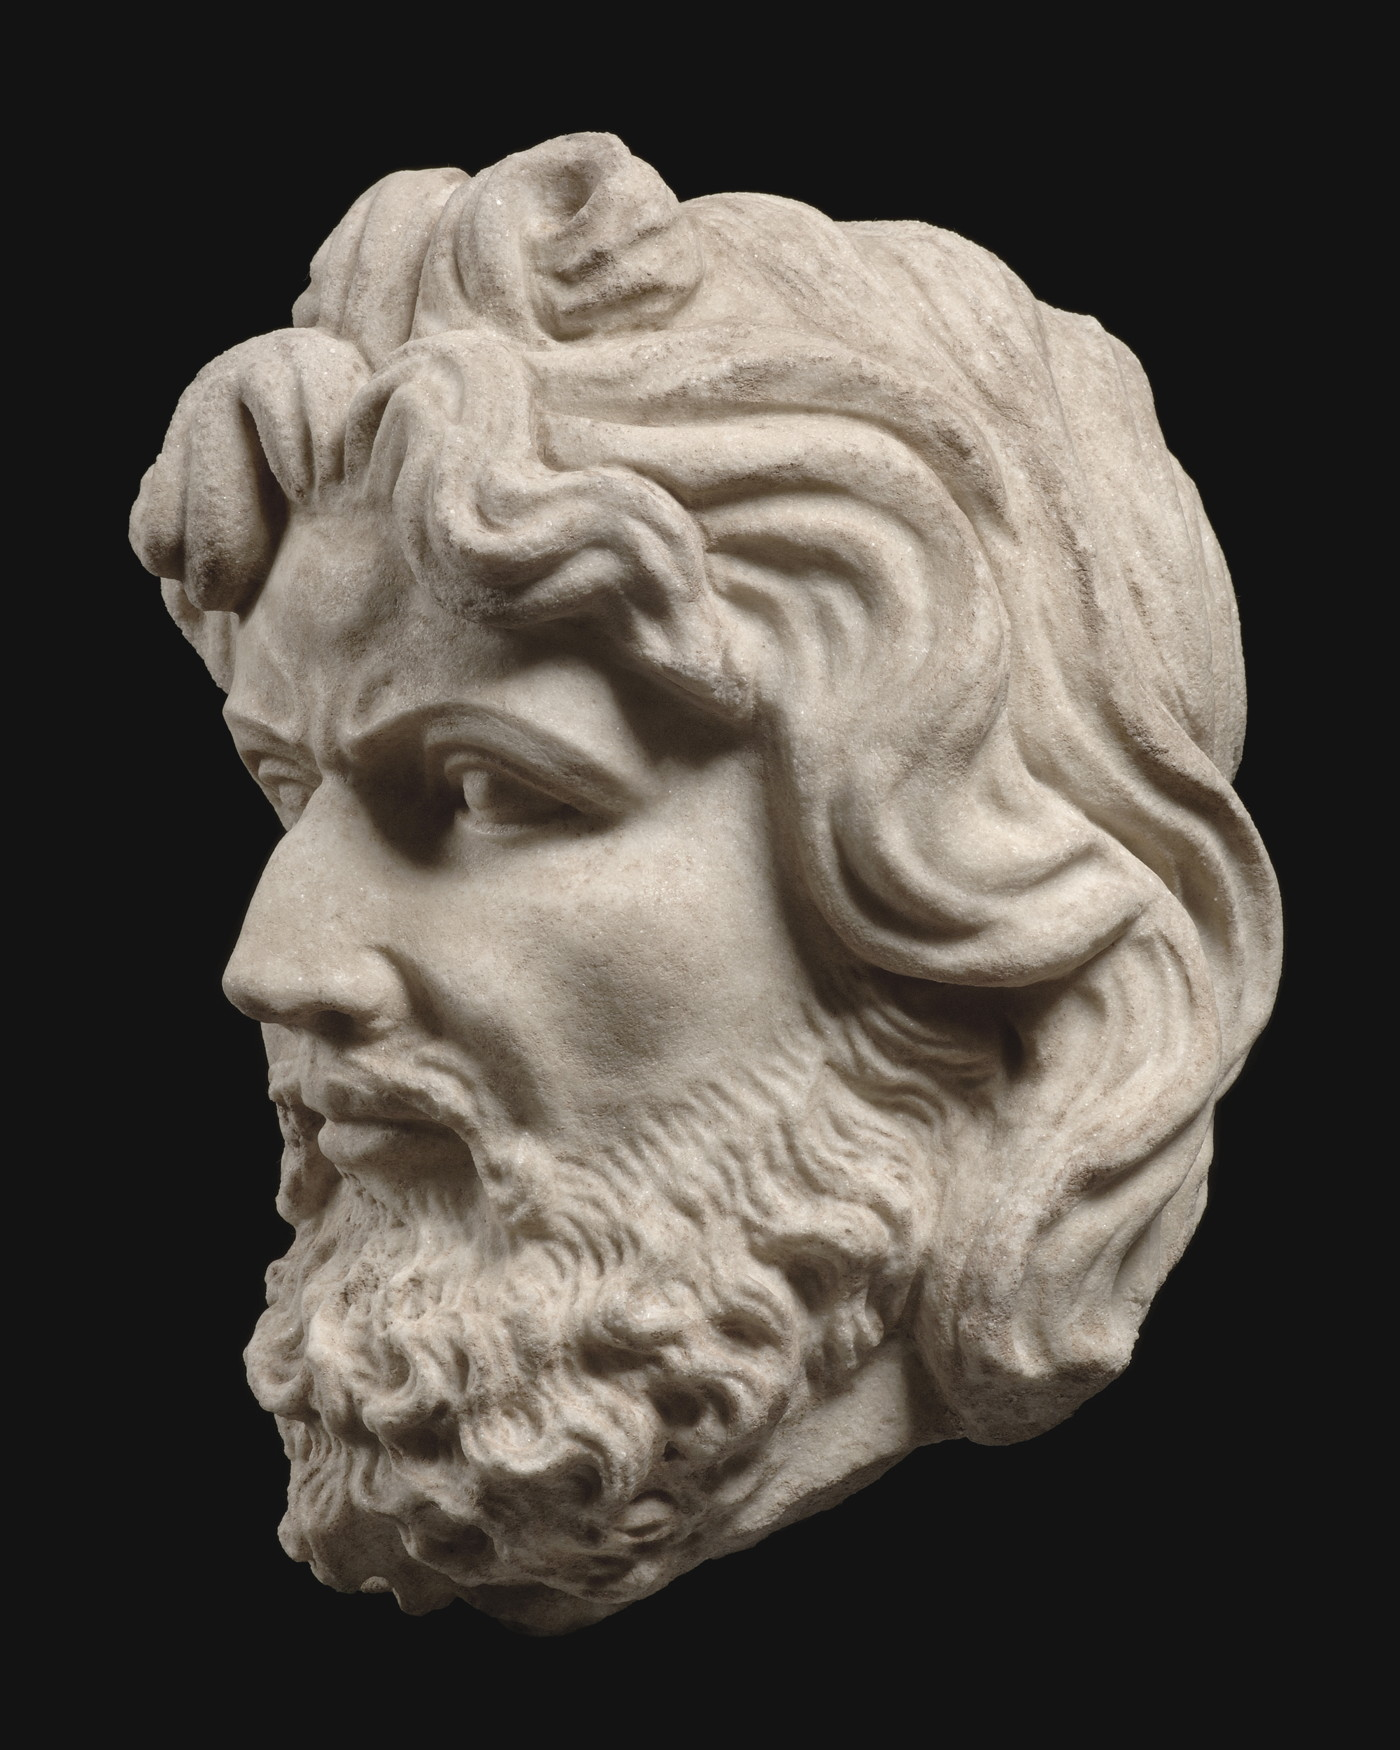 Head of a bearded man, Marble, Central Asia, 2nd/3rd century, height 27cm